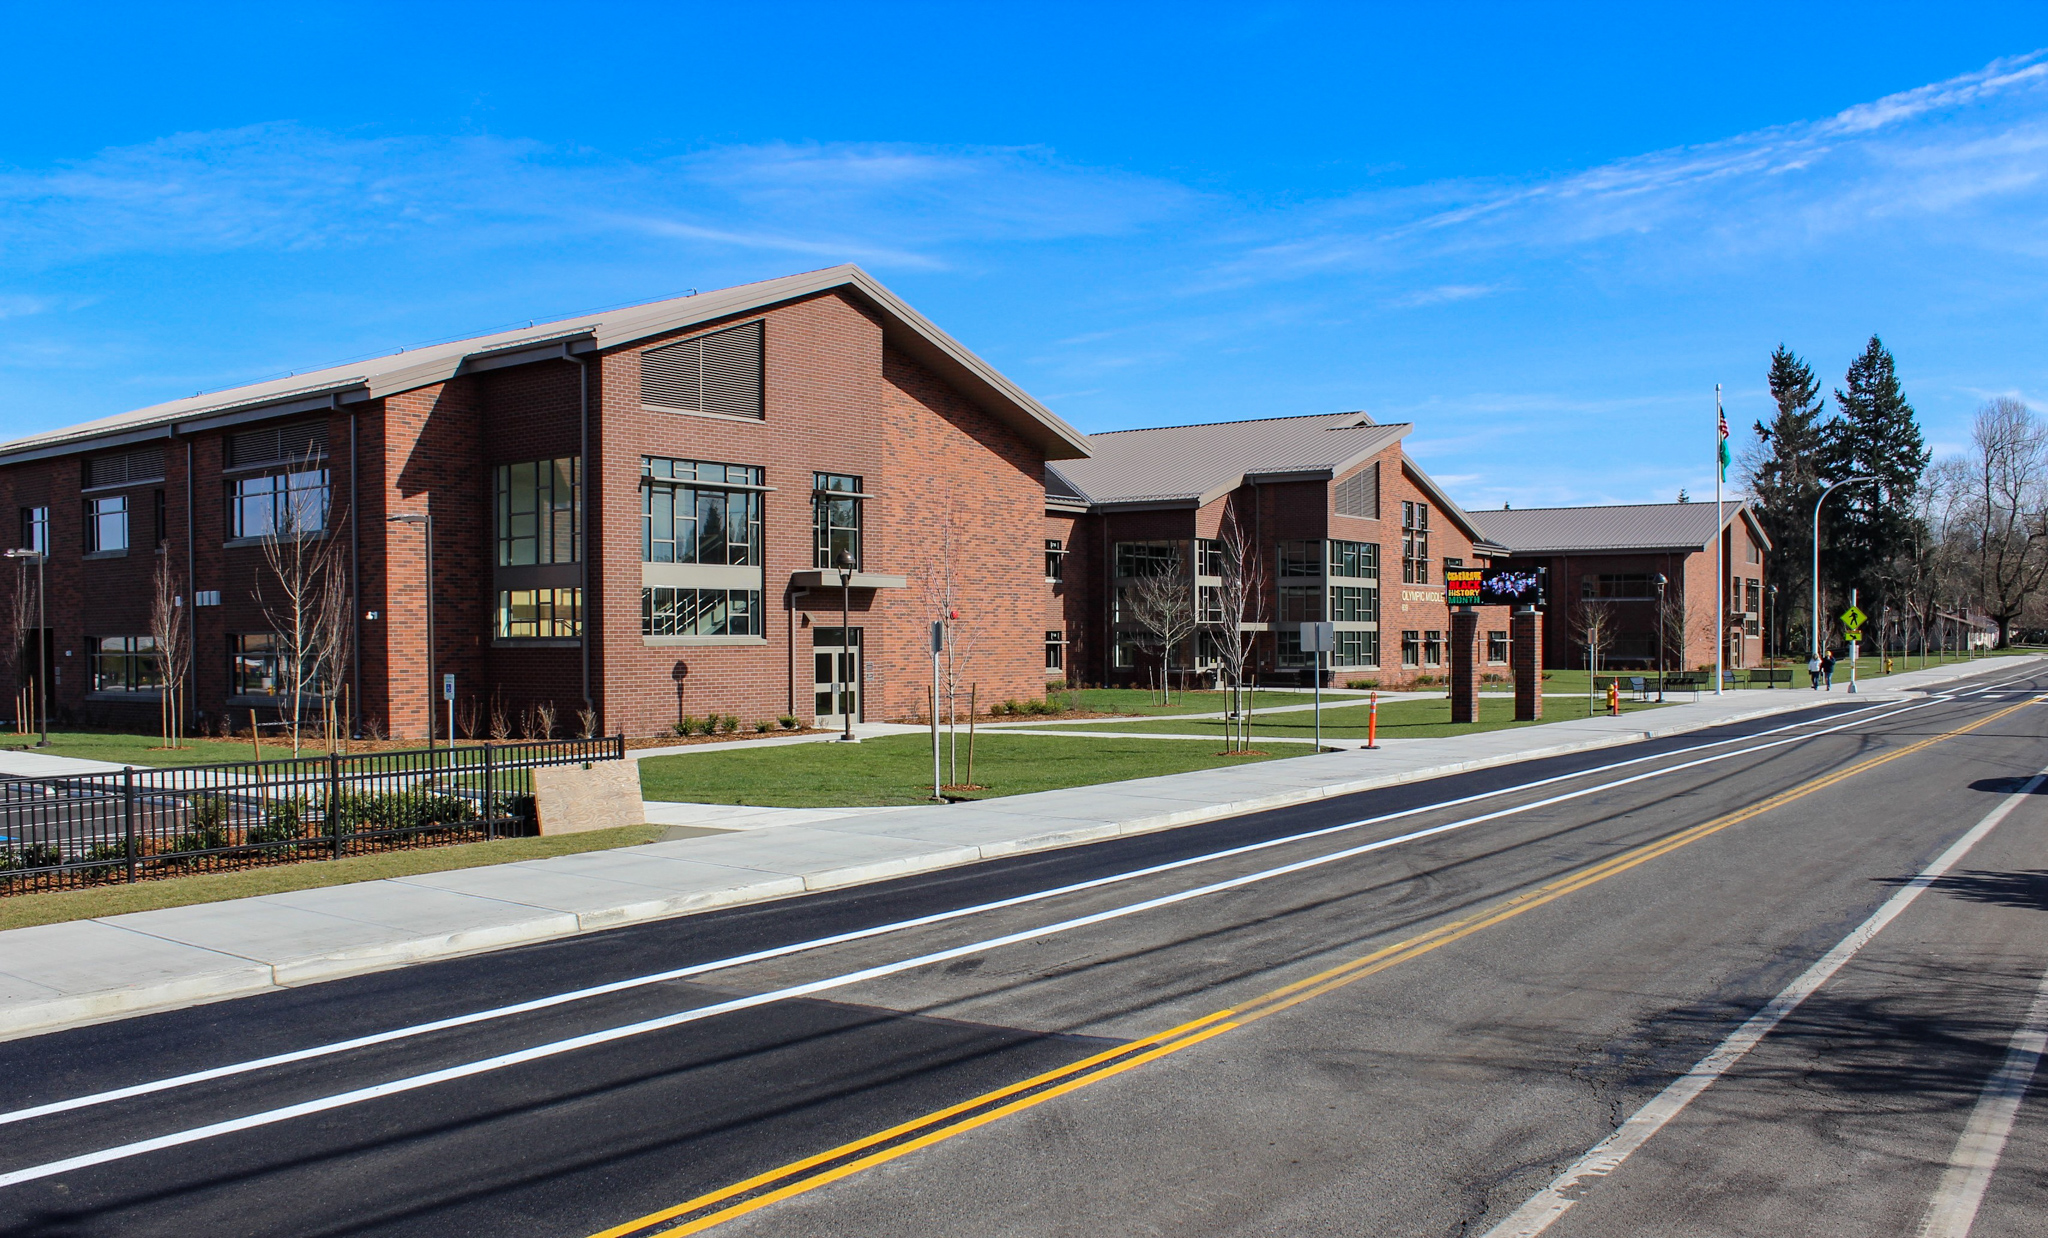 Olympic Middle School